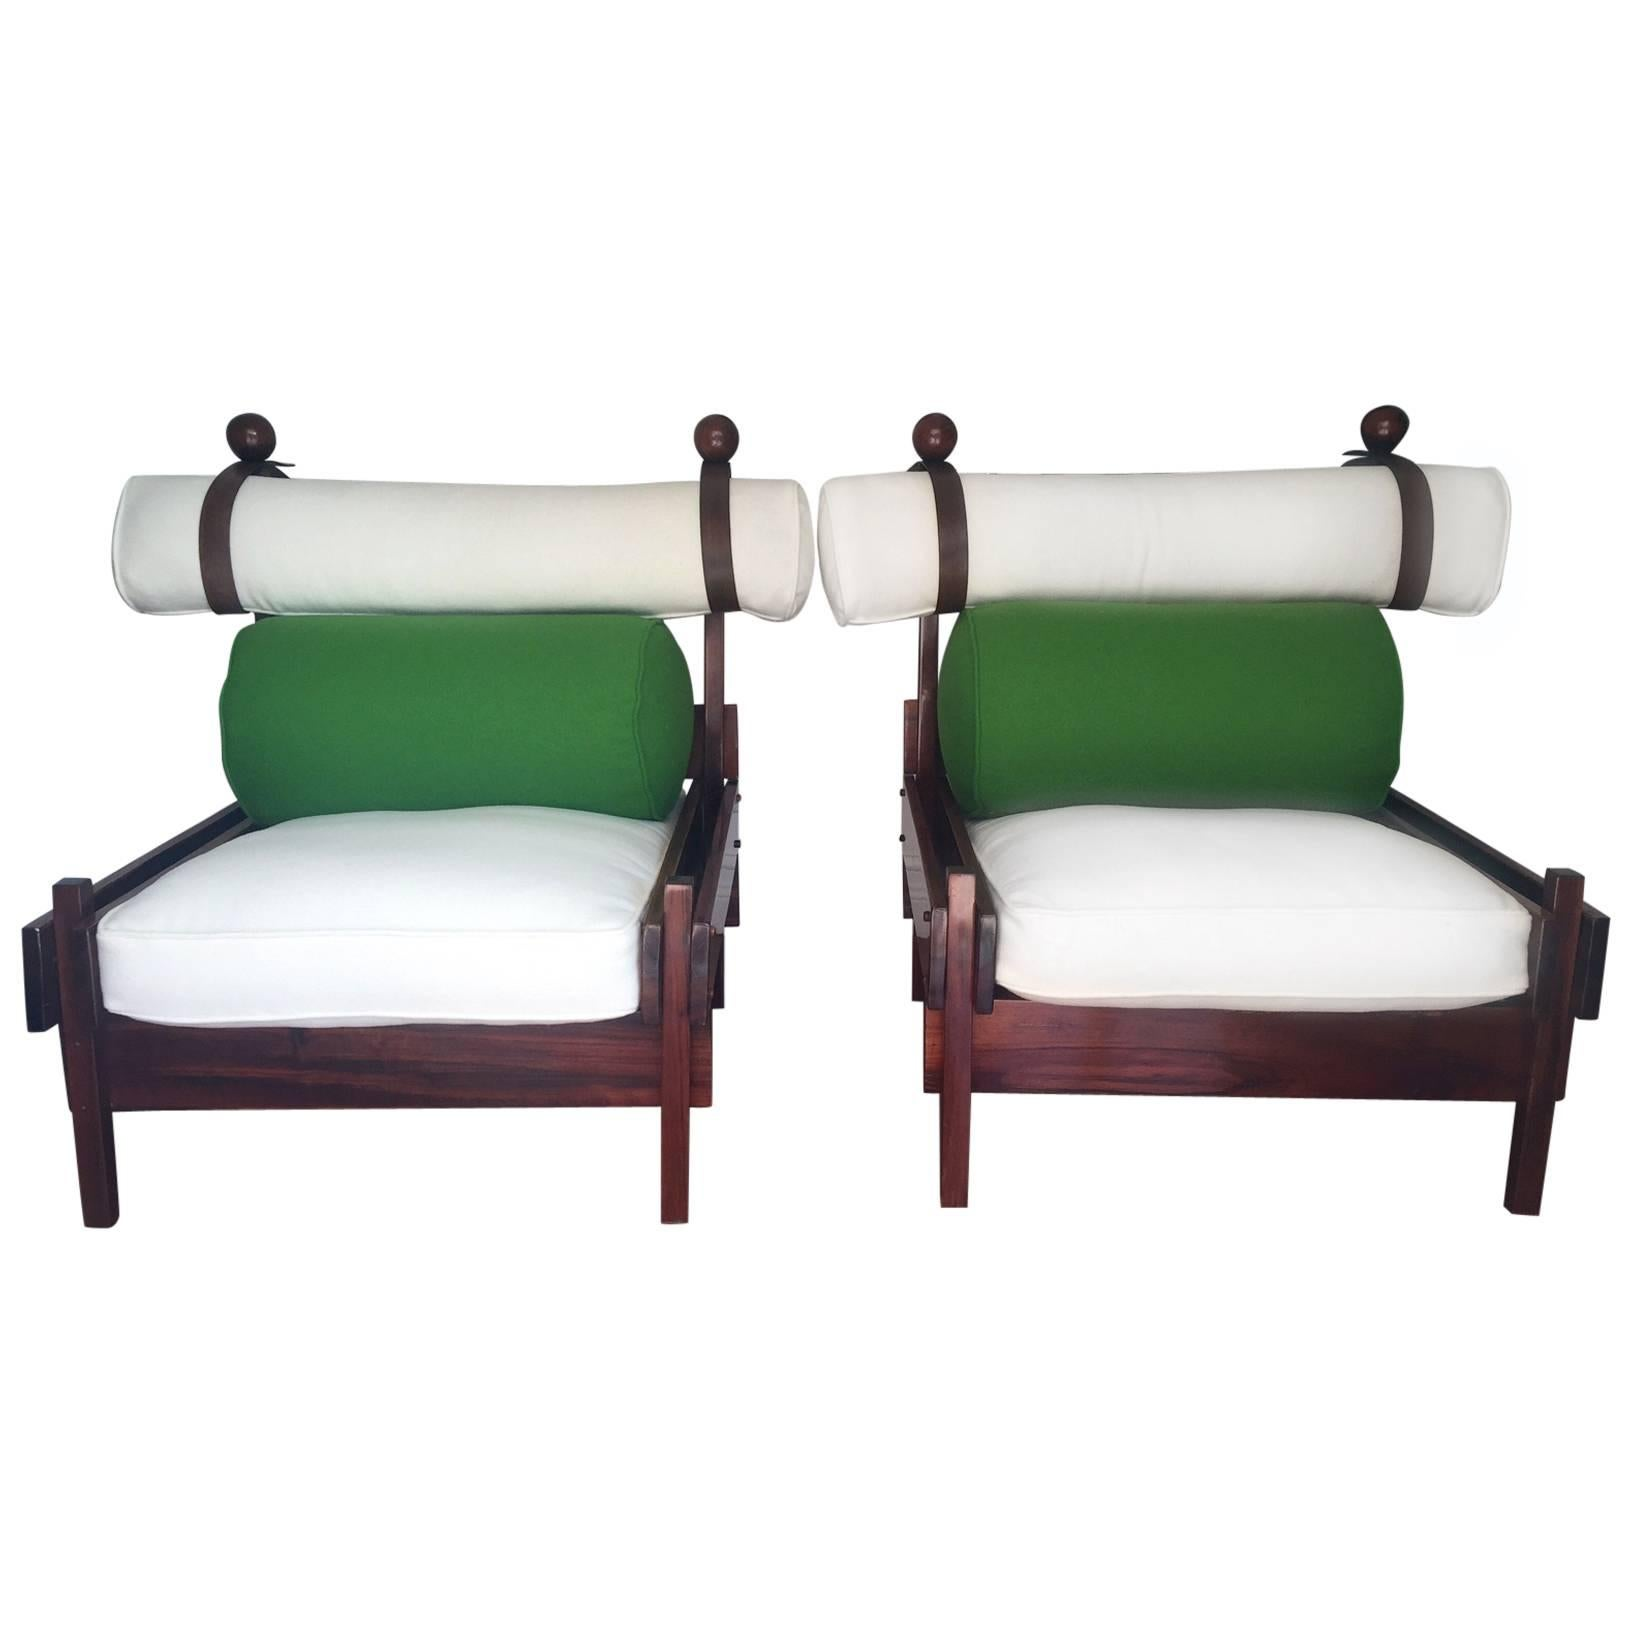 Pair of Tonico Rosewood Chairs by Sergio Rodrigues